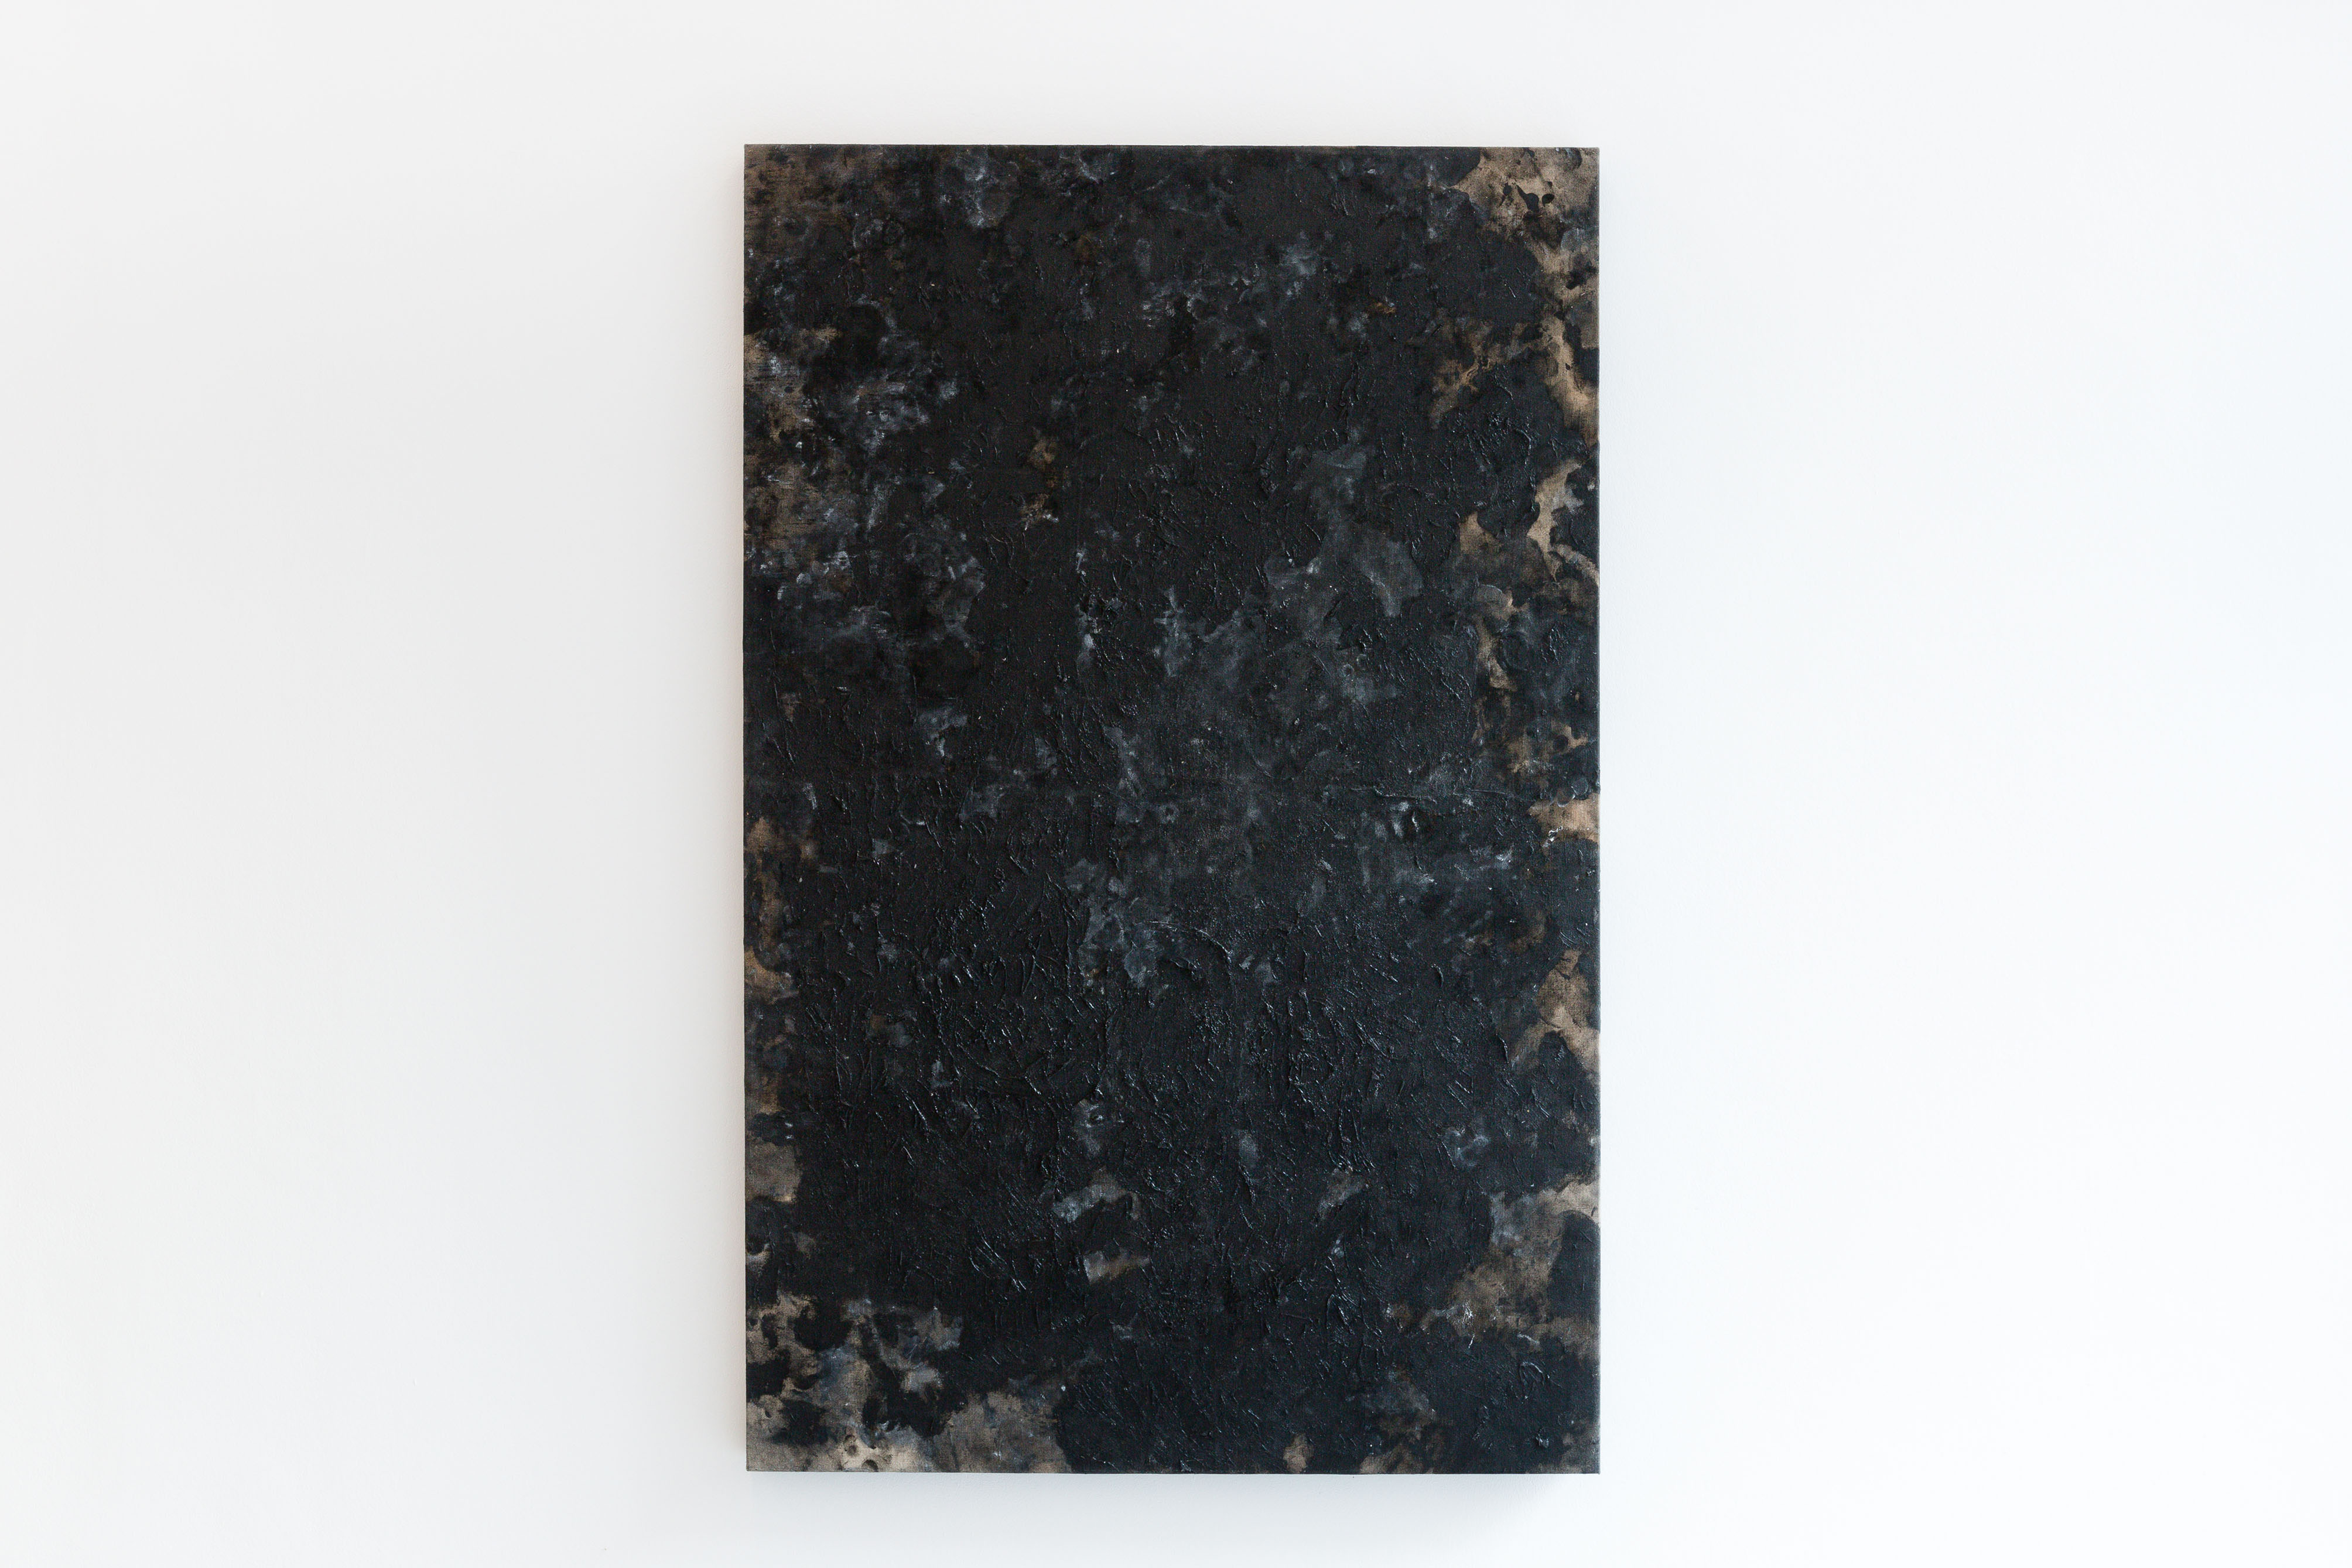 Phoebe Collings-James, Ivory Black [#5], 2014, oil on linen, 133 x 85 cm